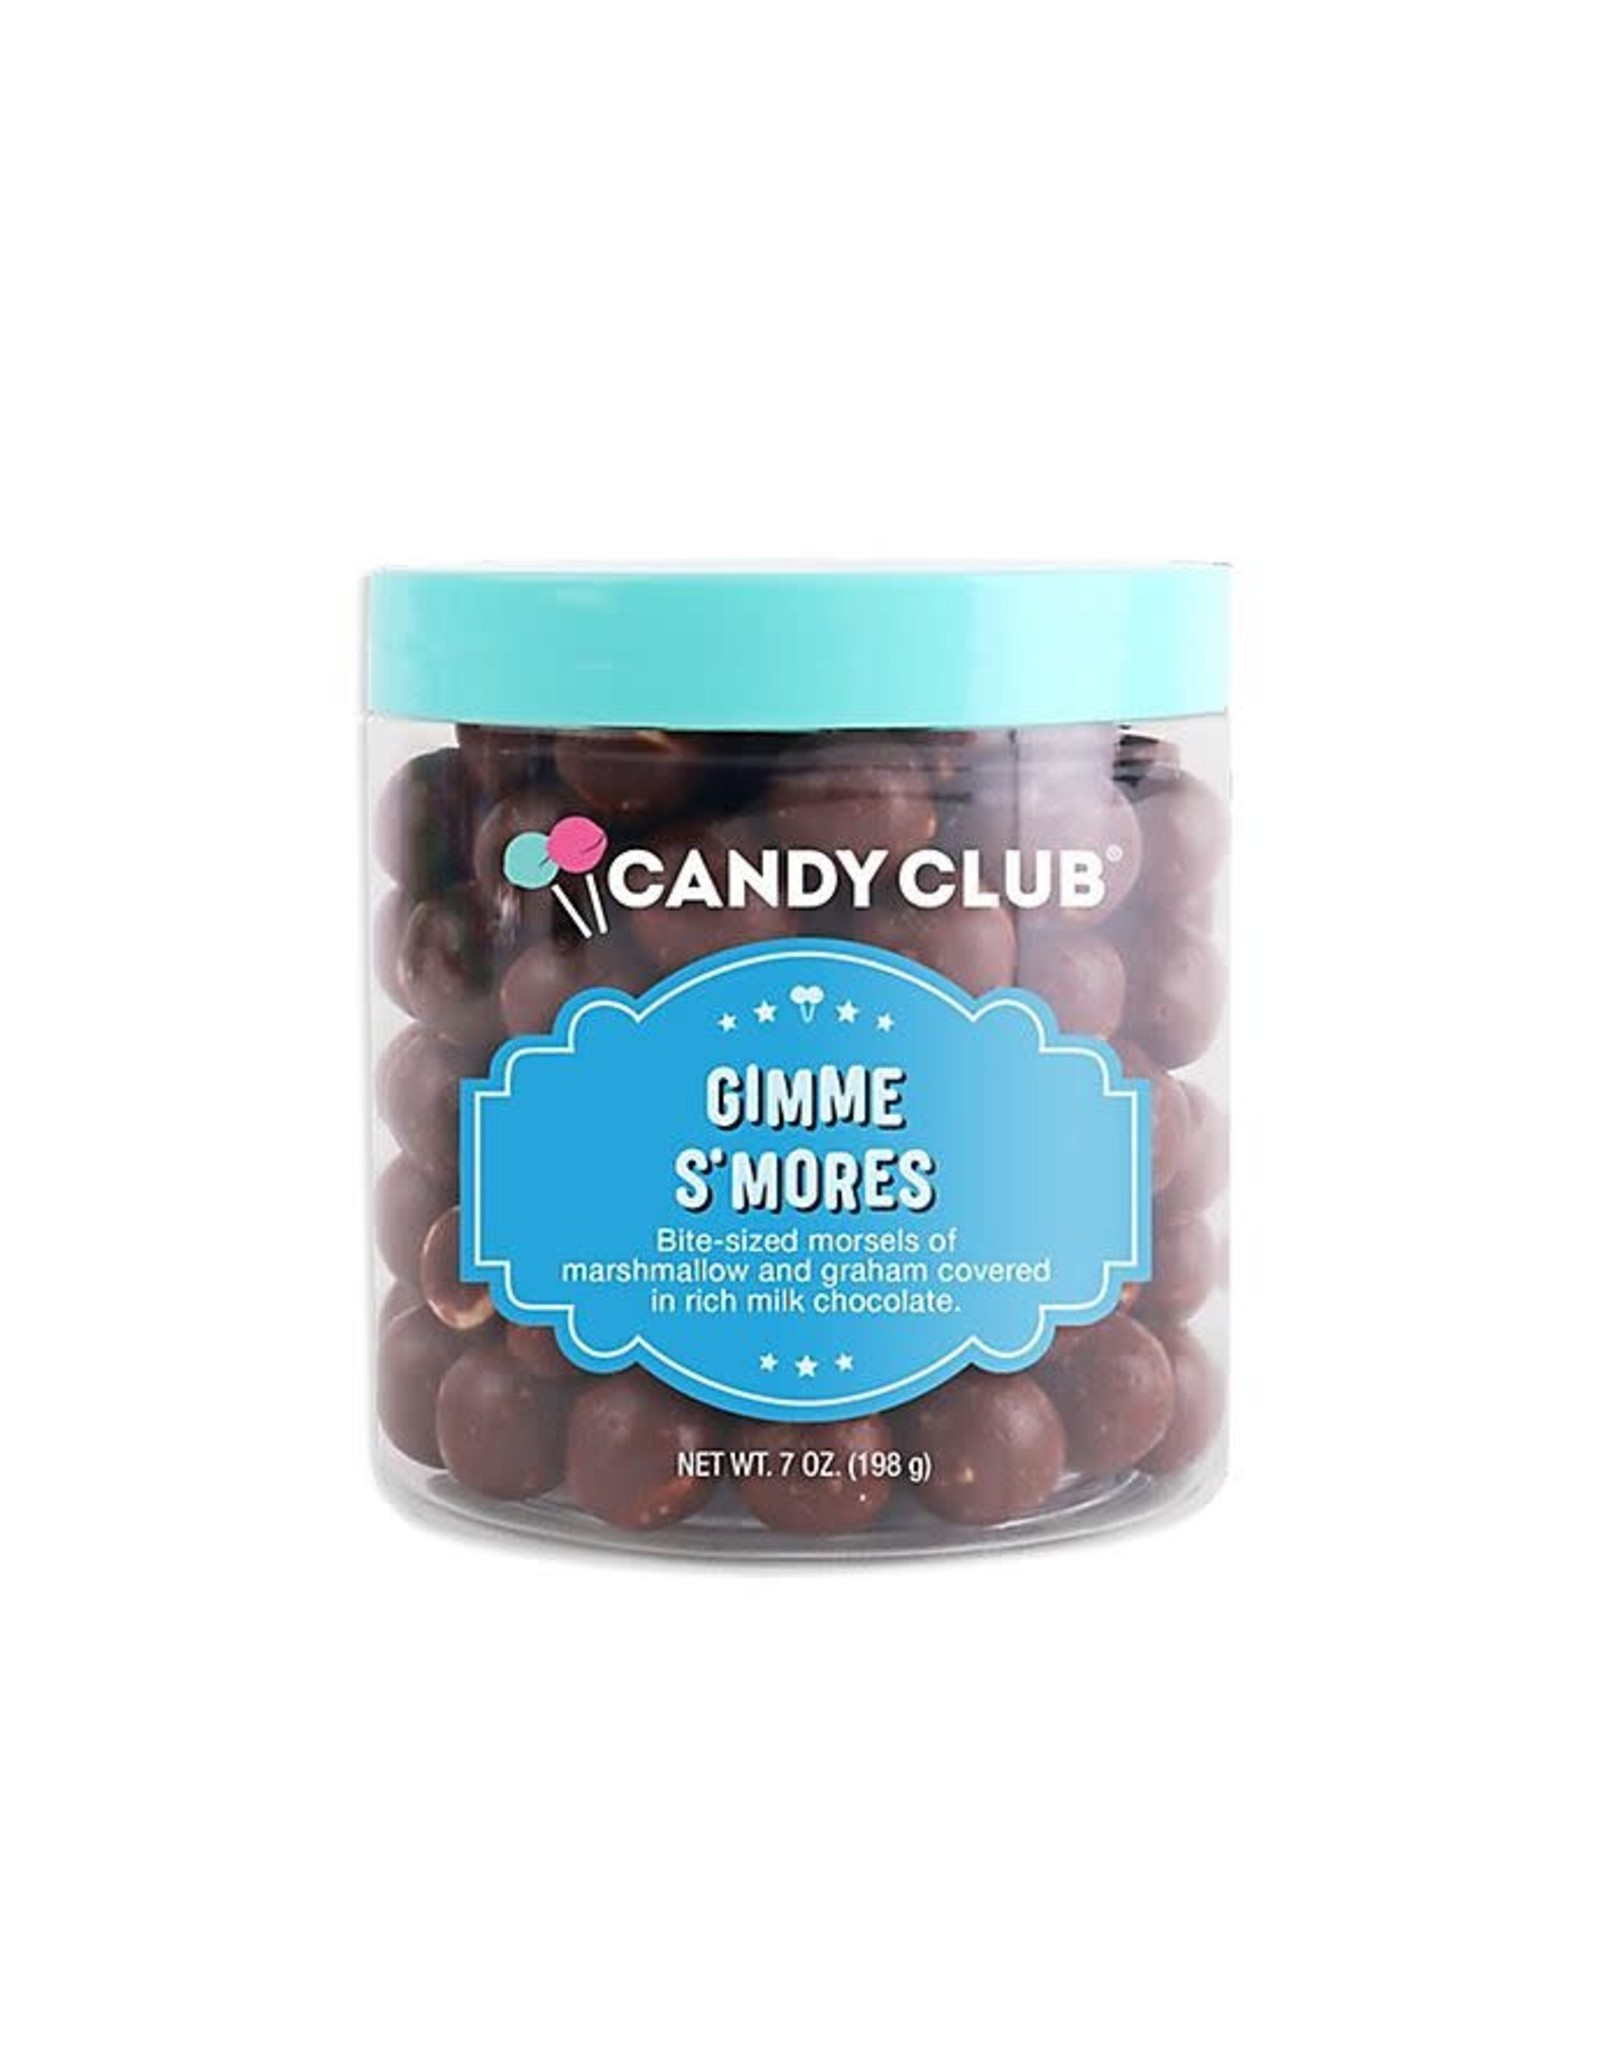 Candy Club Candy, Gimme S'mores, 7oz